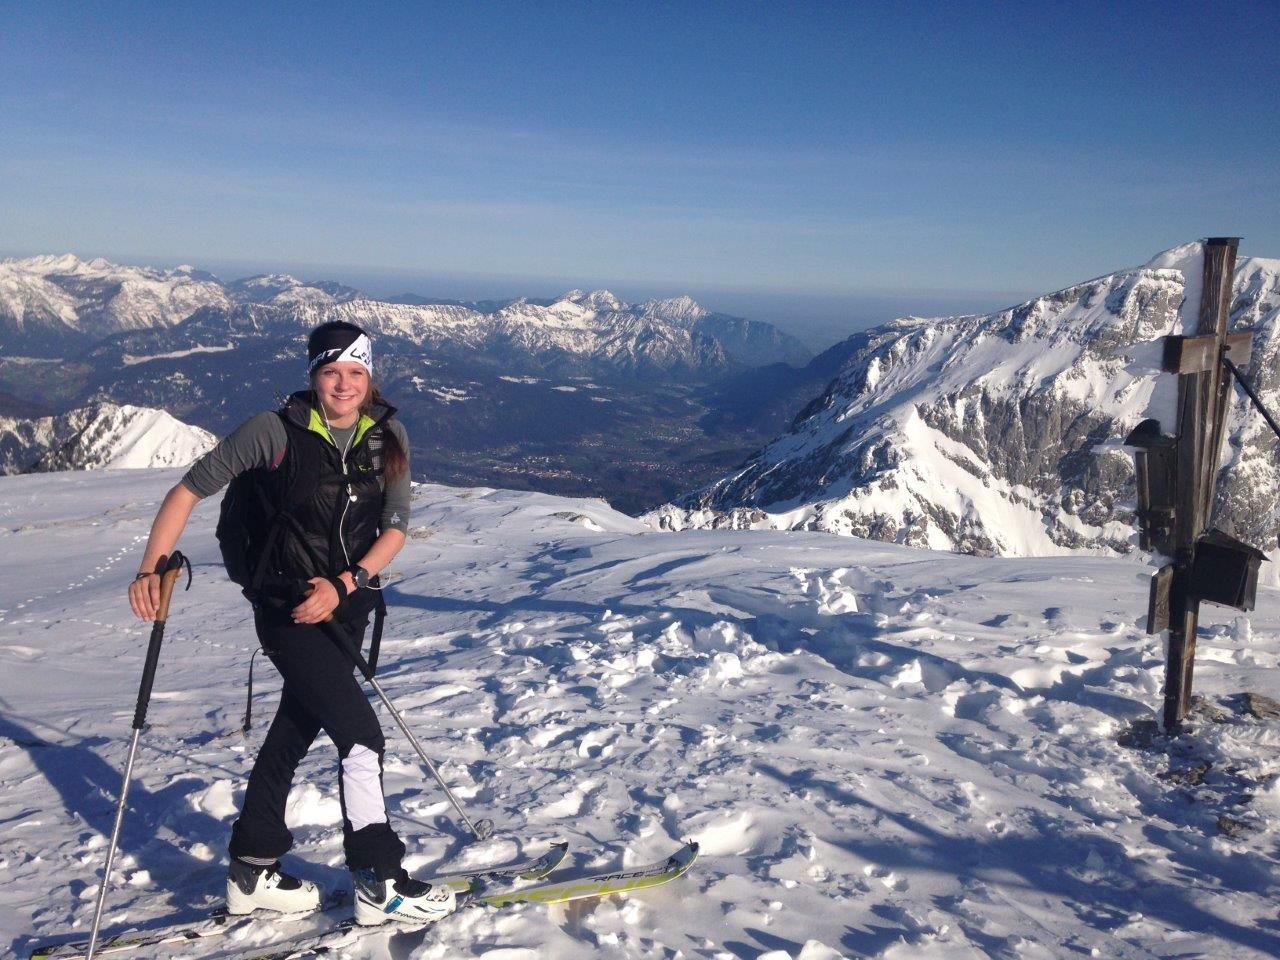 essay on an outdoor festival in winter Aviemore adventure festival celebrates the best of outdoor sport & adventure culture, with programme of outdoor activities, films, guest speakers & live music.